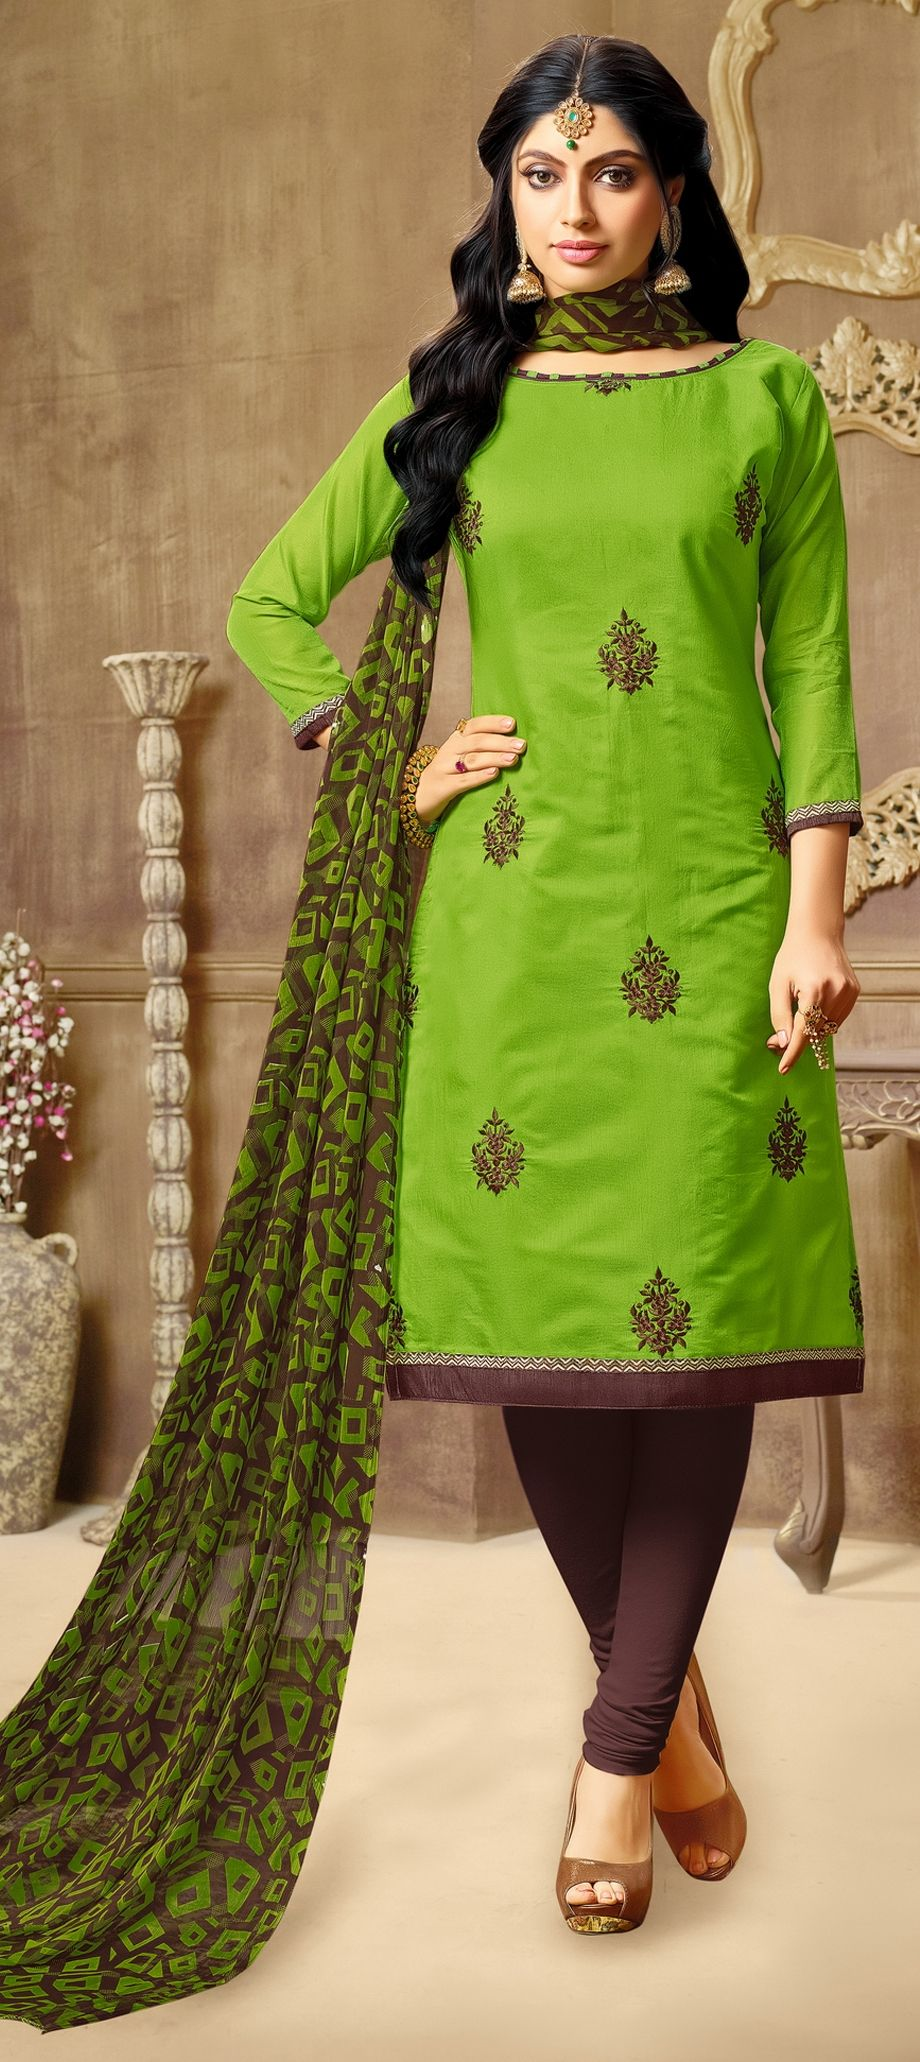 3c86a49540 903363: Green color family unstitched Party Wear Salwar Kameez .